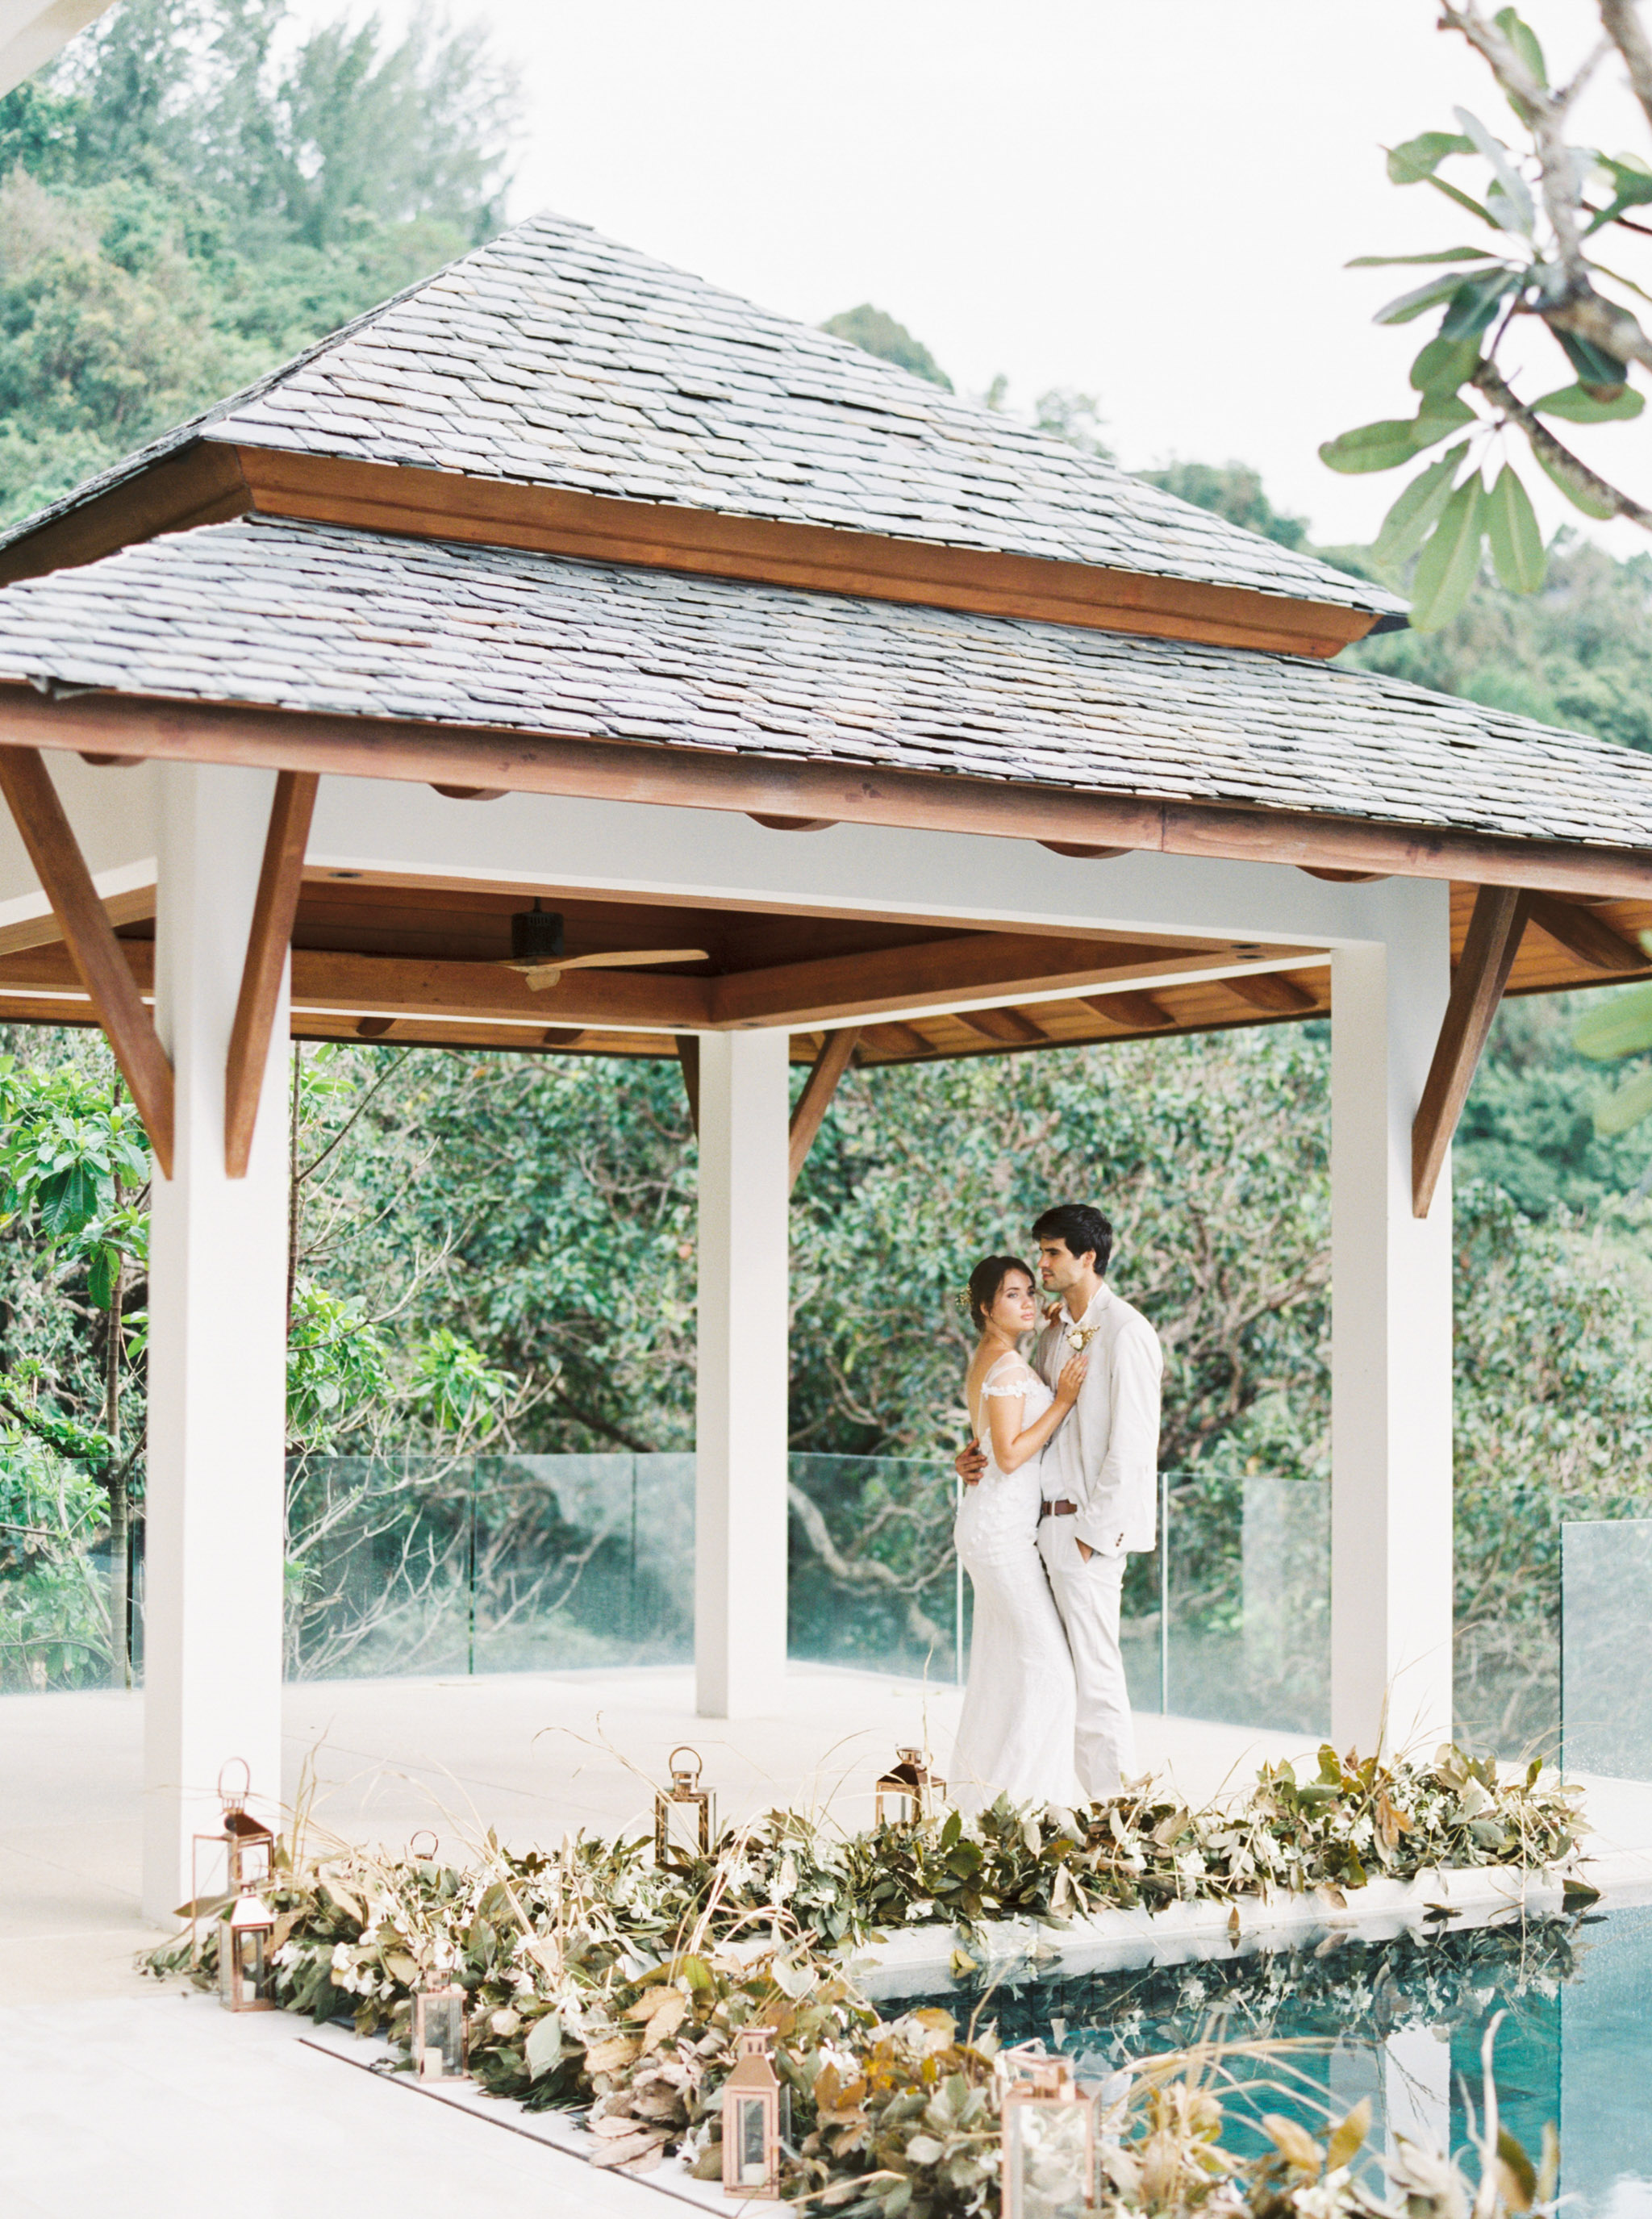 Destination Wedding Phuket Thailand Fine Art Film Photographer Sheri McMahon-00080-80.jpg